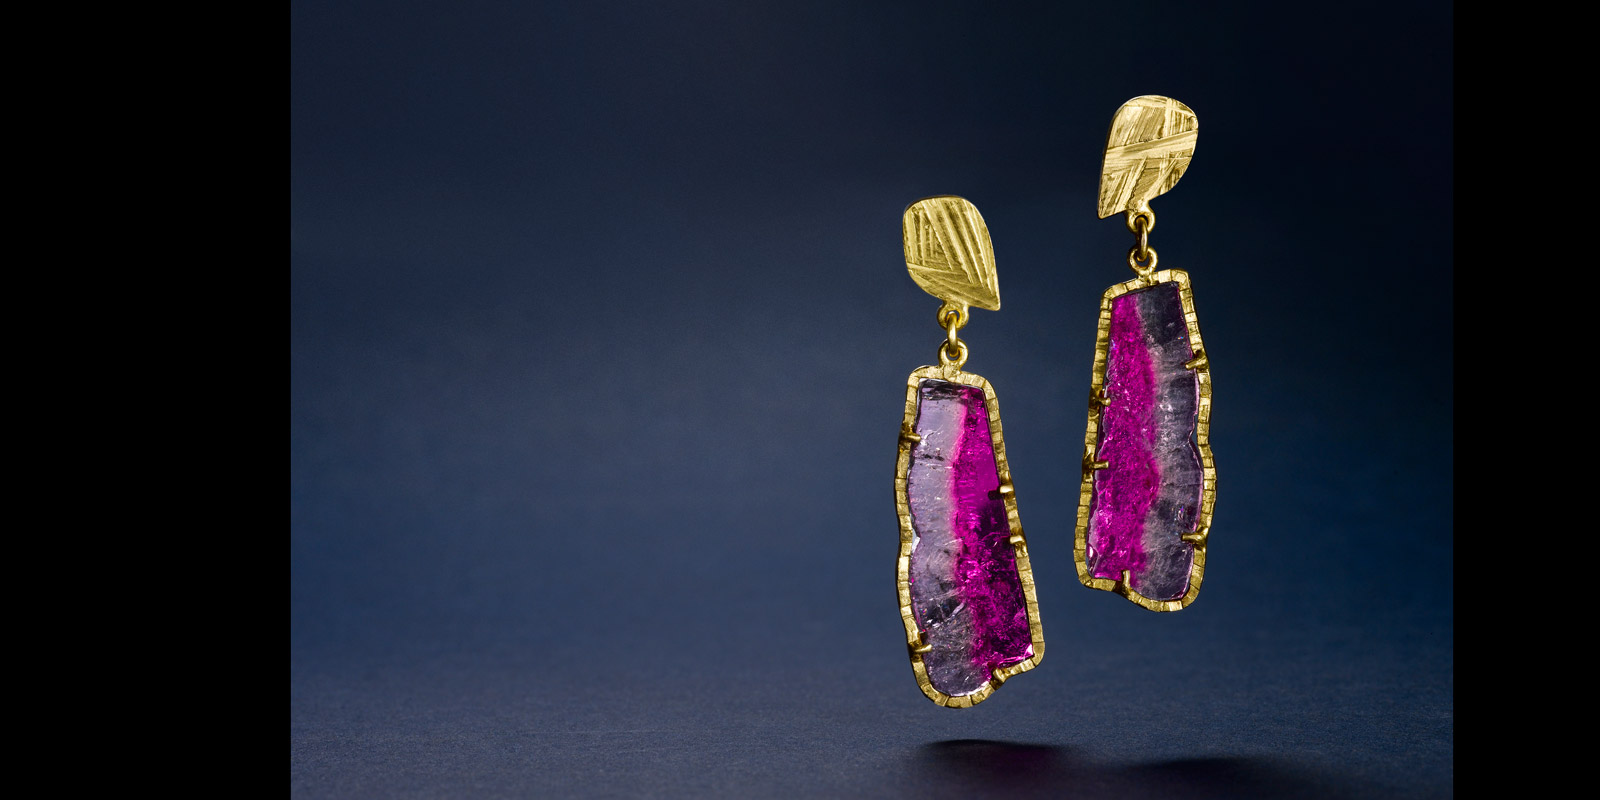 Bicolor tourmaline and 22 karat gold